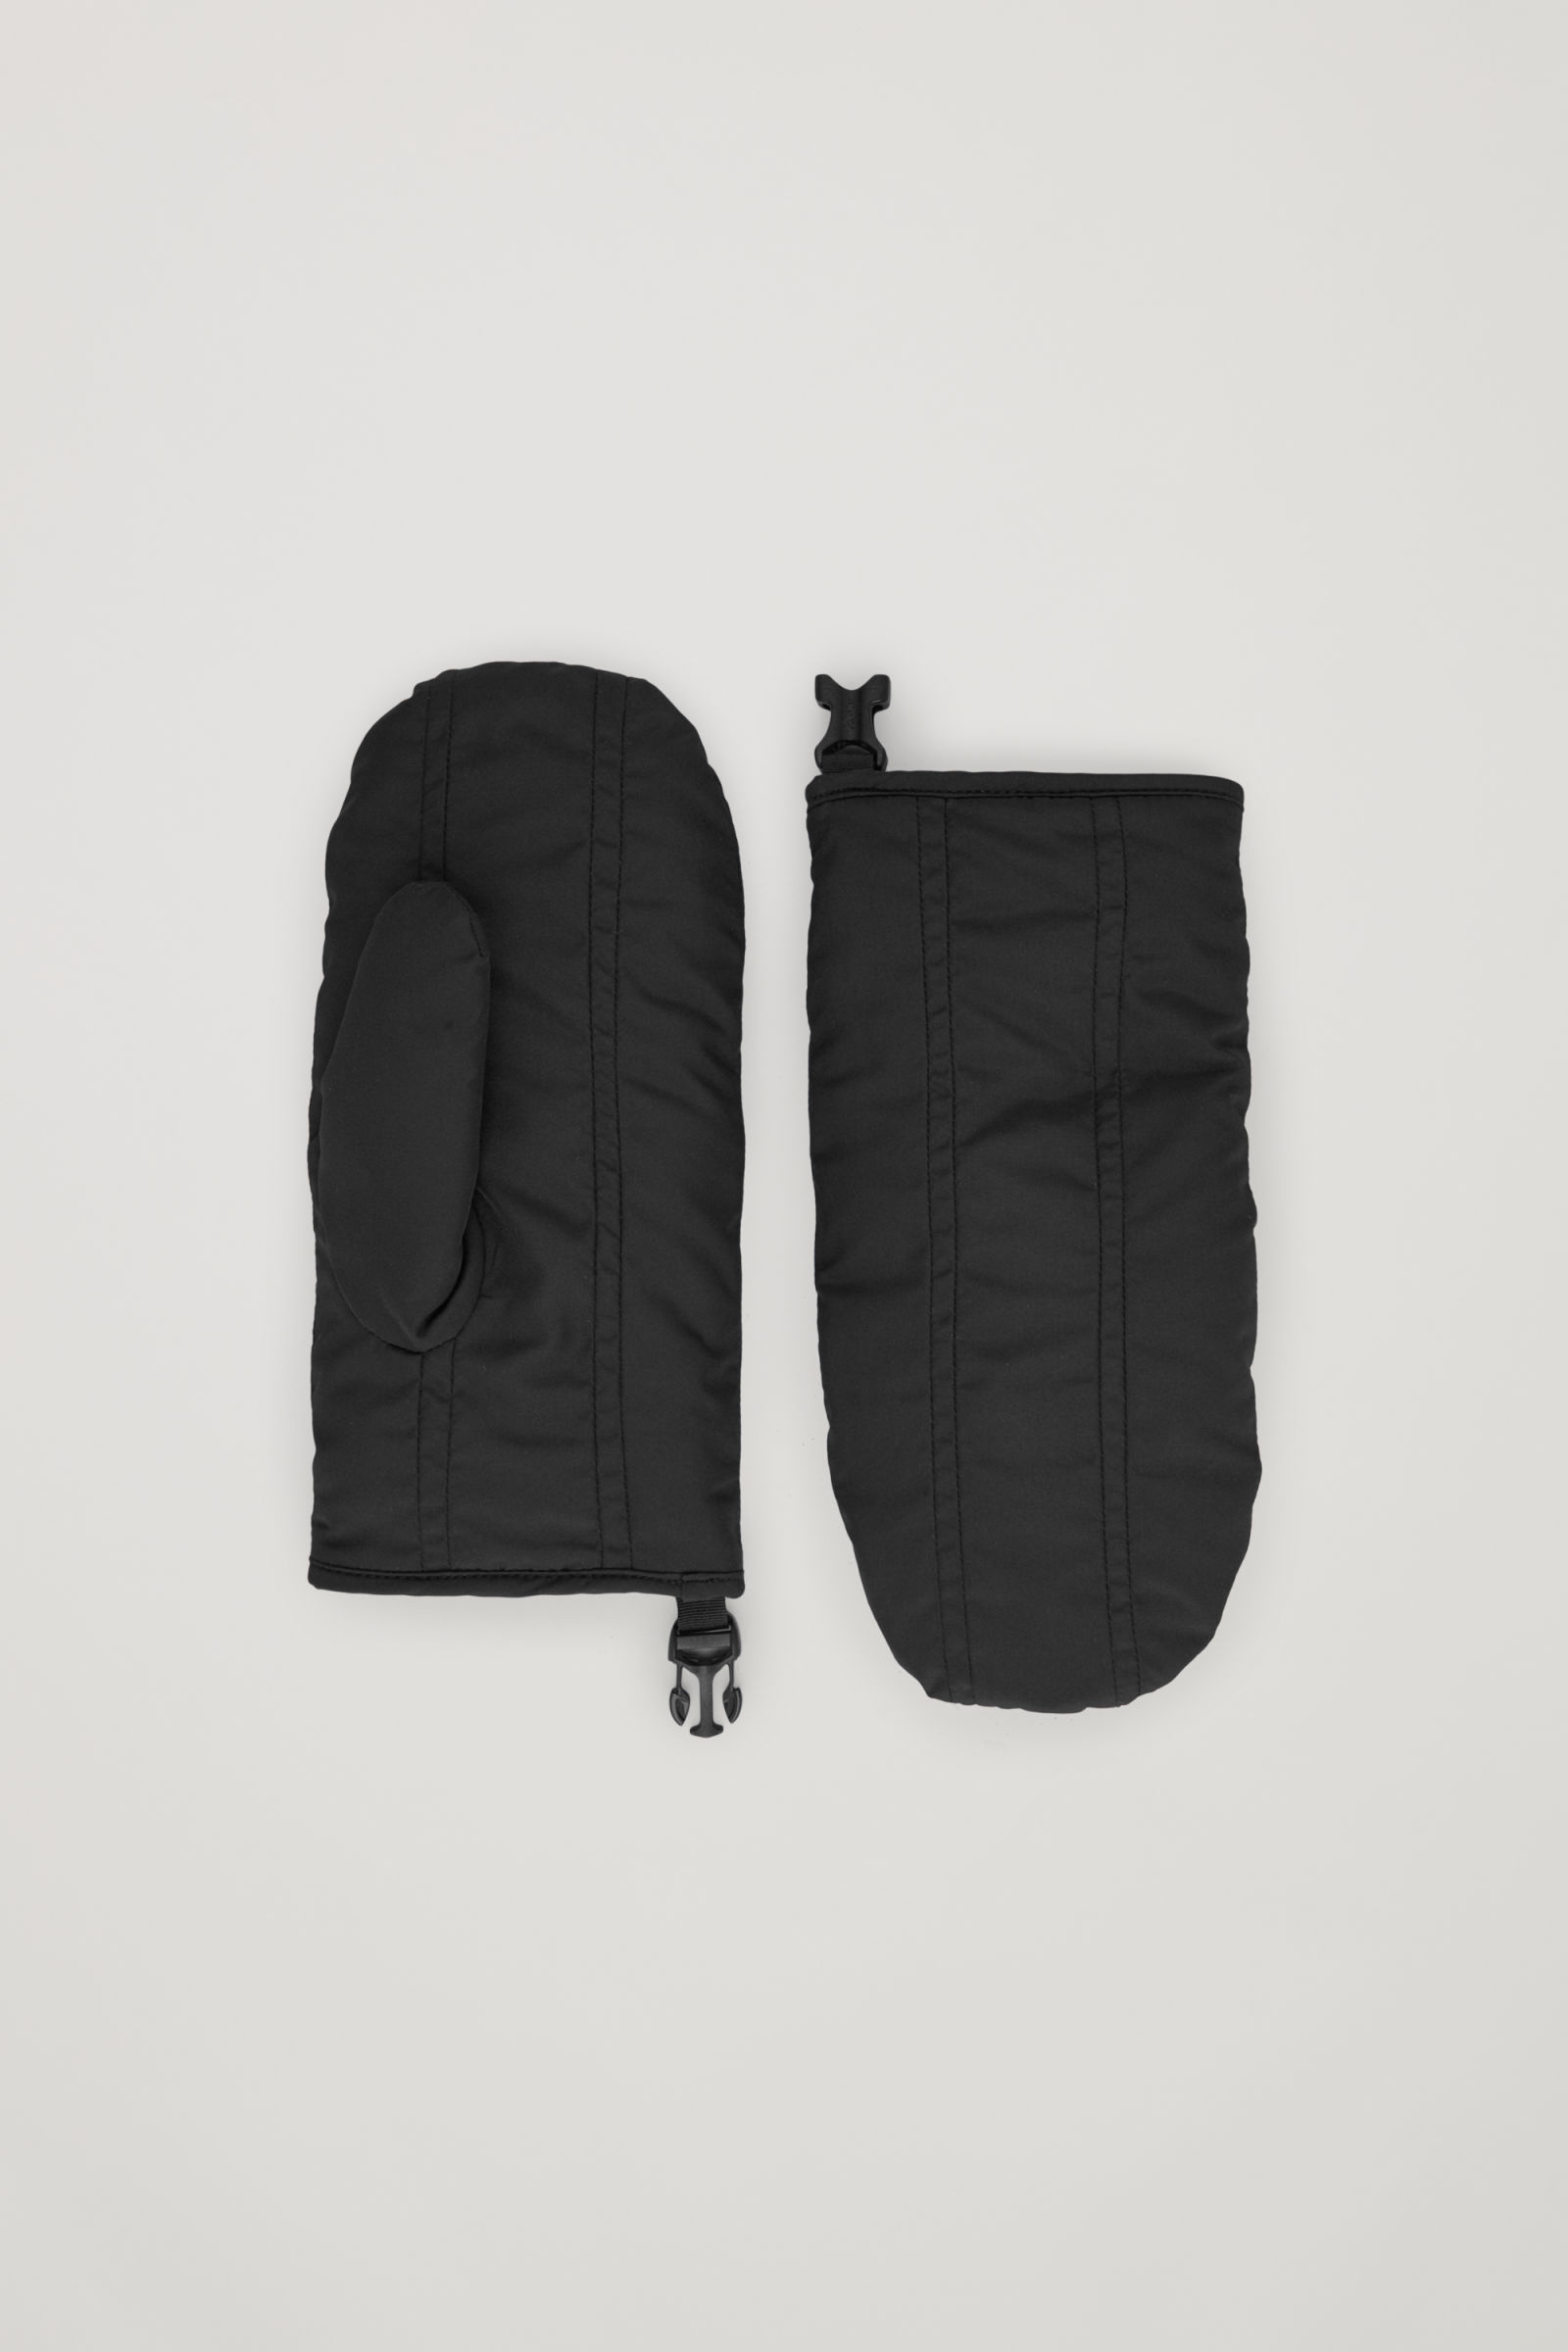 mittens accessories from COS